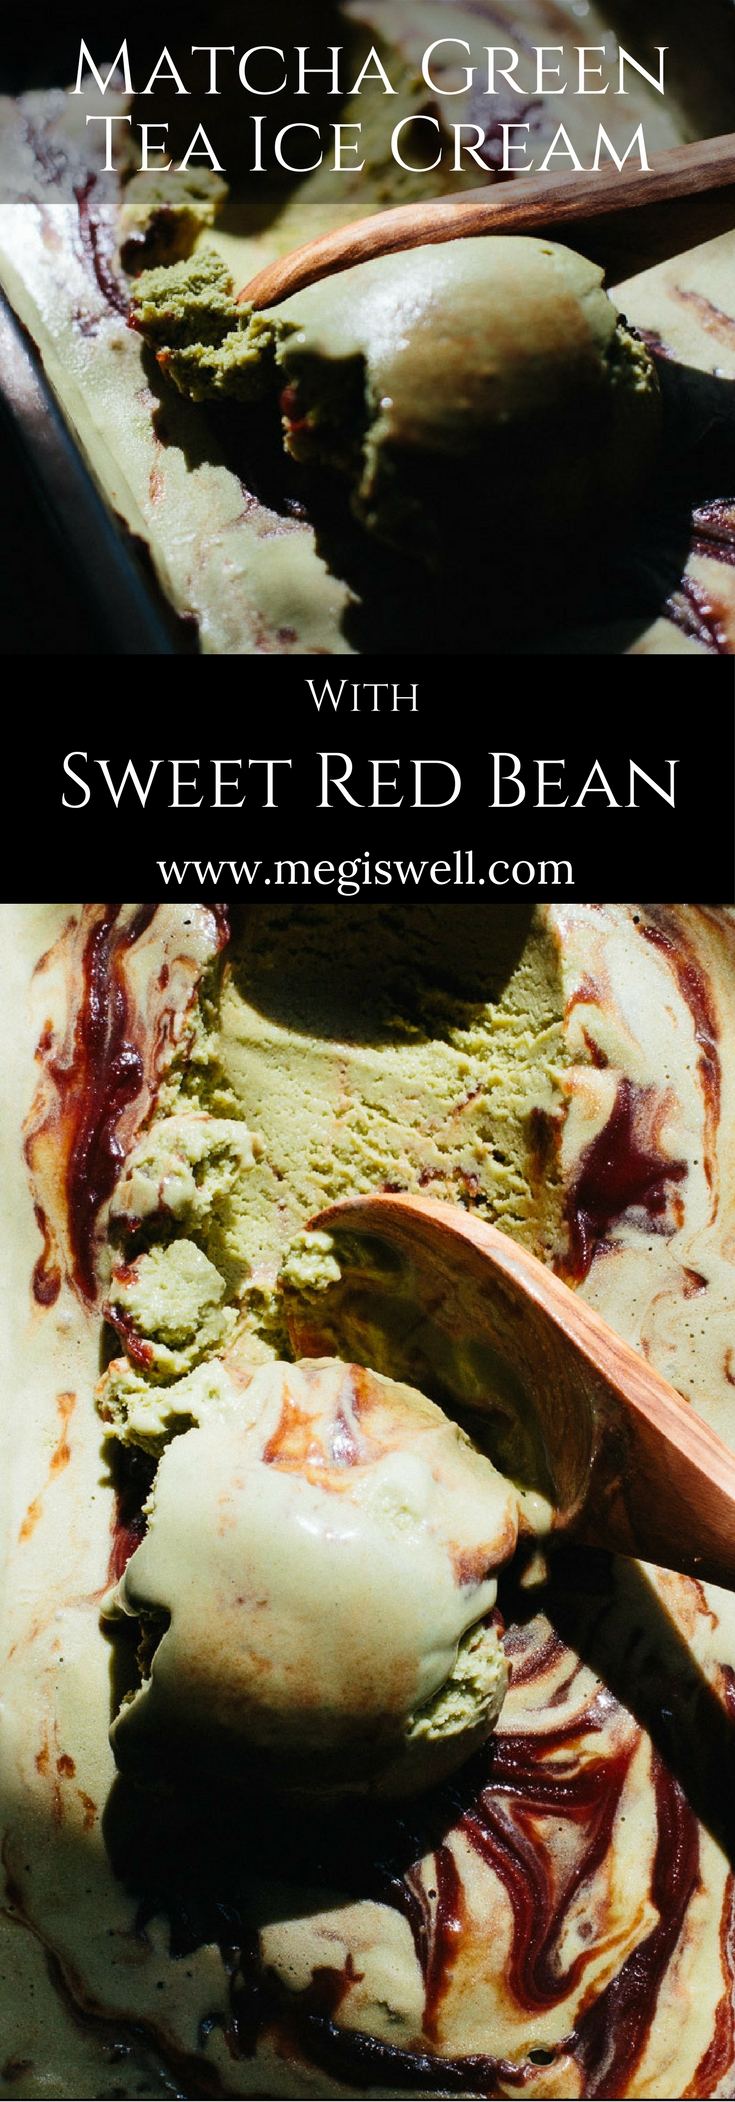 This Matcha Green Tea Ice Cream with Sweet Red Bean is creamy and soft with a definite bite of matcha tea that is tempered with the sweetness of the red bean paste.   www.megiswell.com